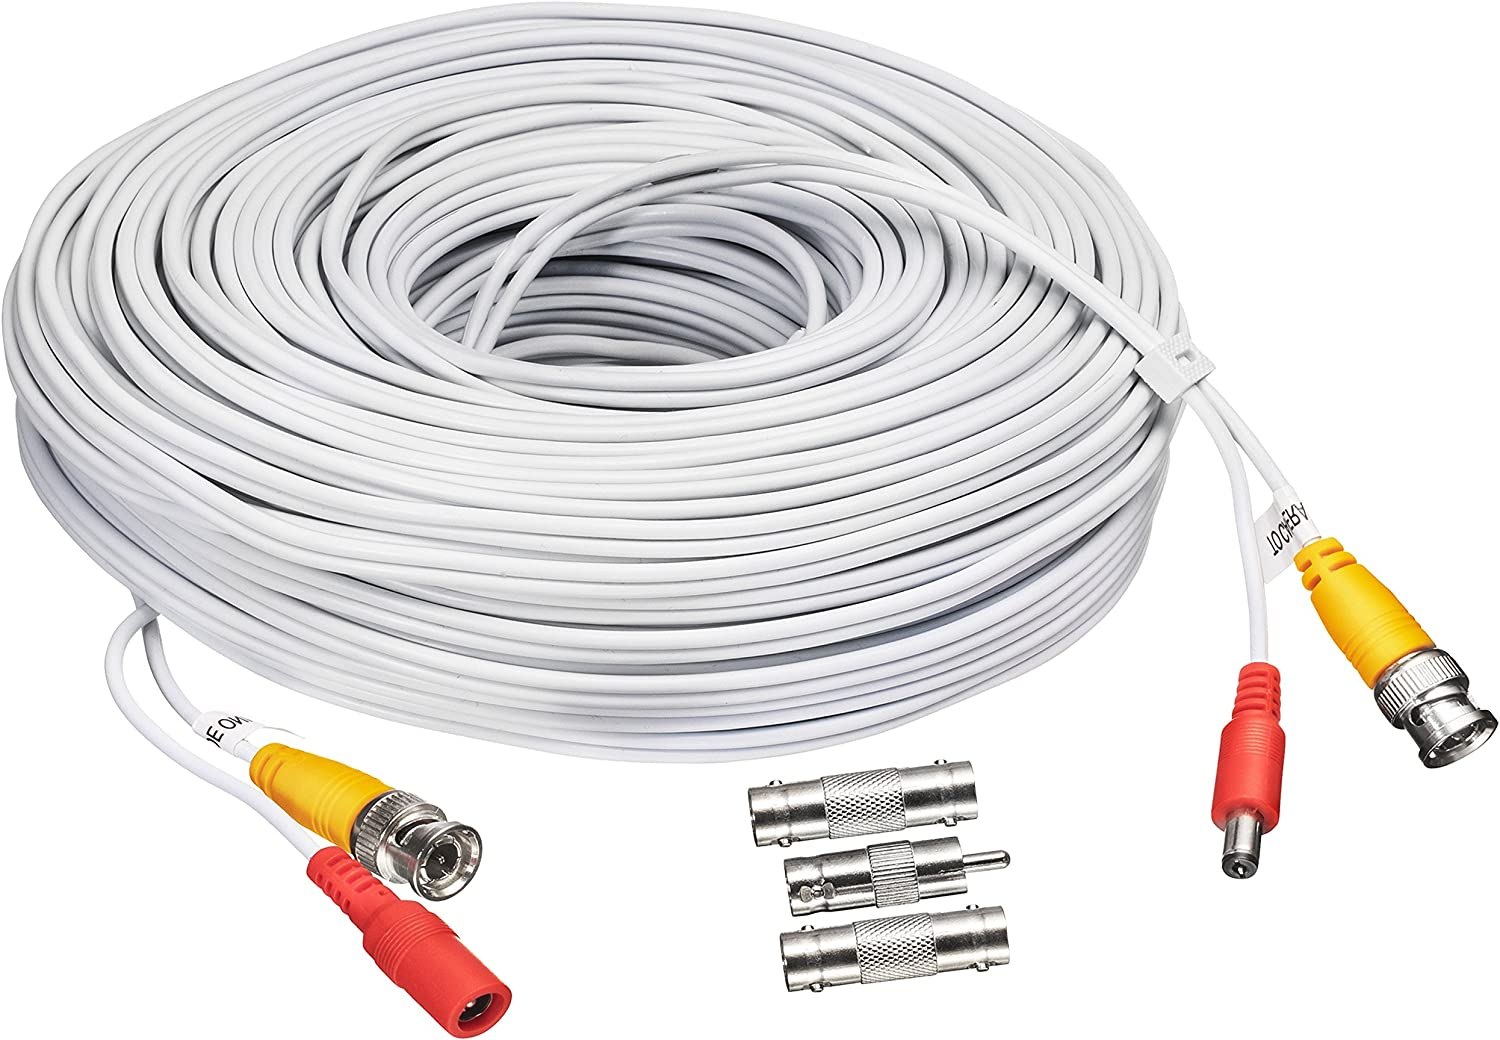 BNC CCTV DVR Cable Video Surveillance Security System Camera Coaxial Wire Cord Connector (150') Premade All-in-One with Power Cord - 150 feet